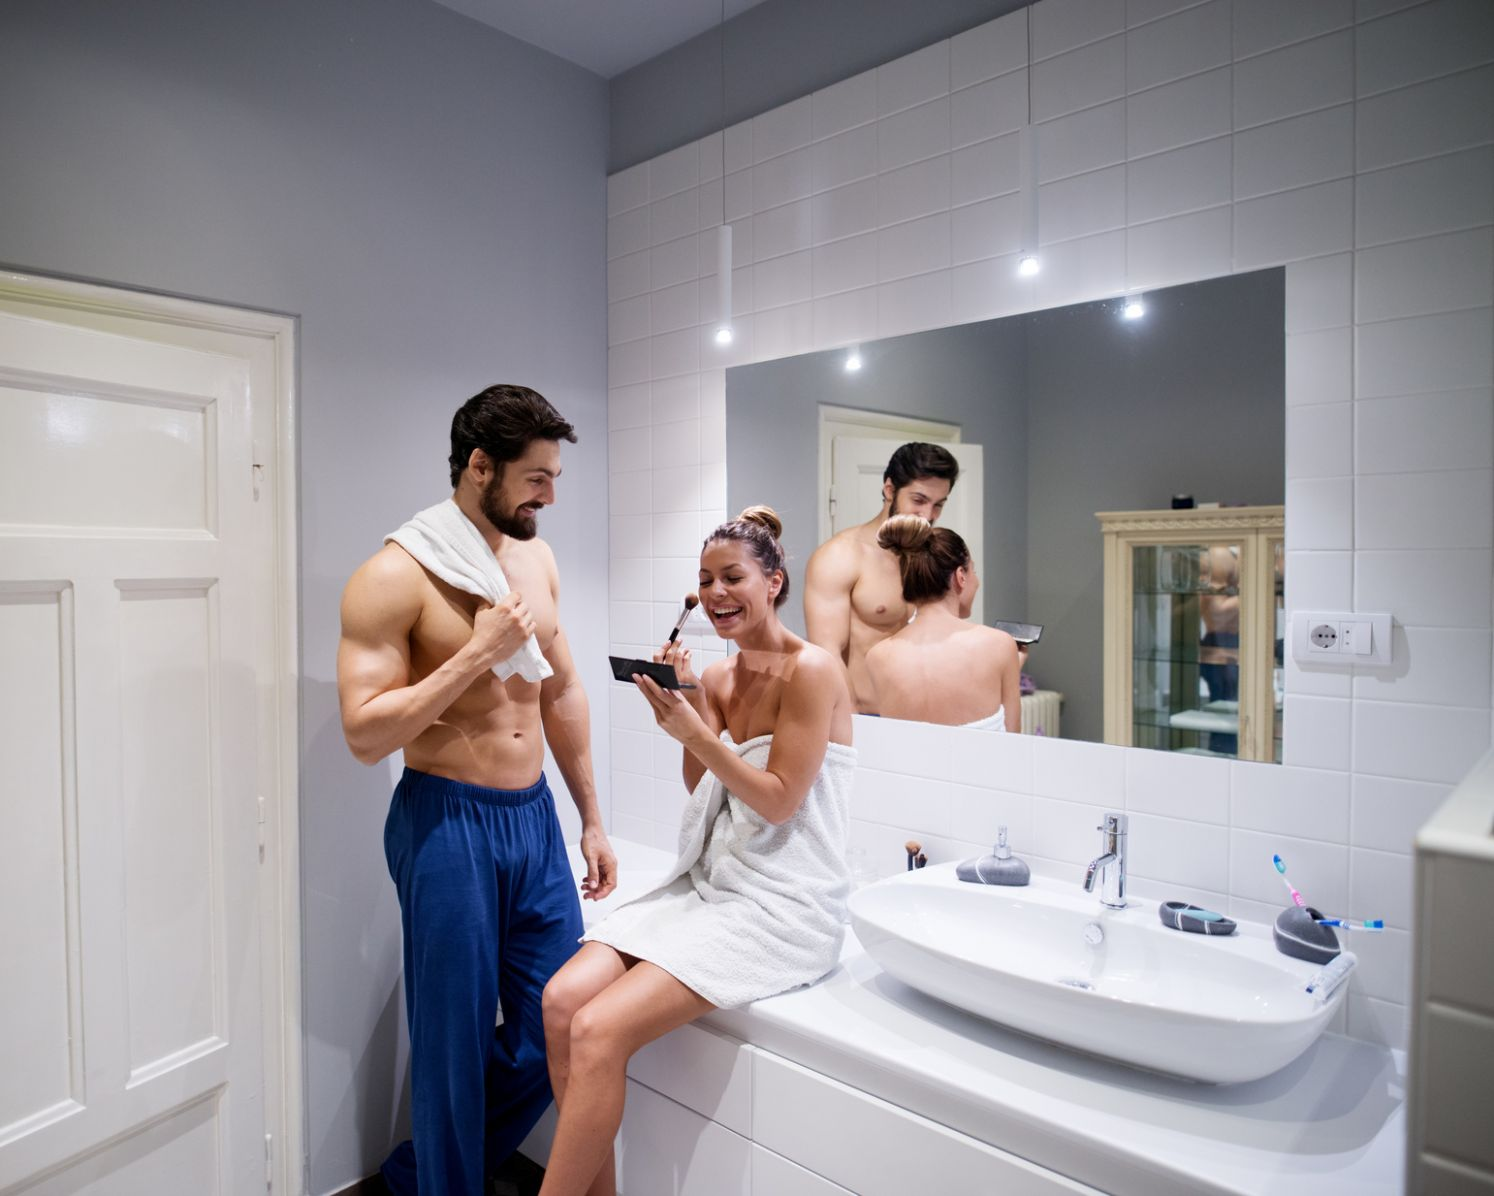 12 Things All Couples Should Vs. Shouldn't Do In The Bathroom Together